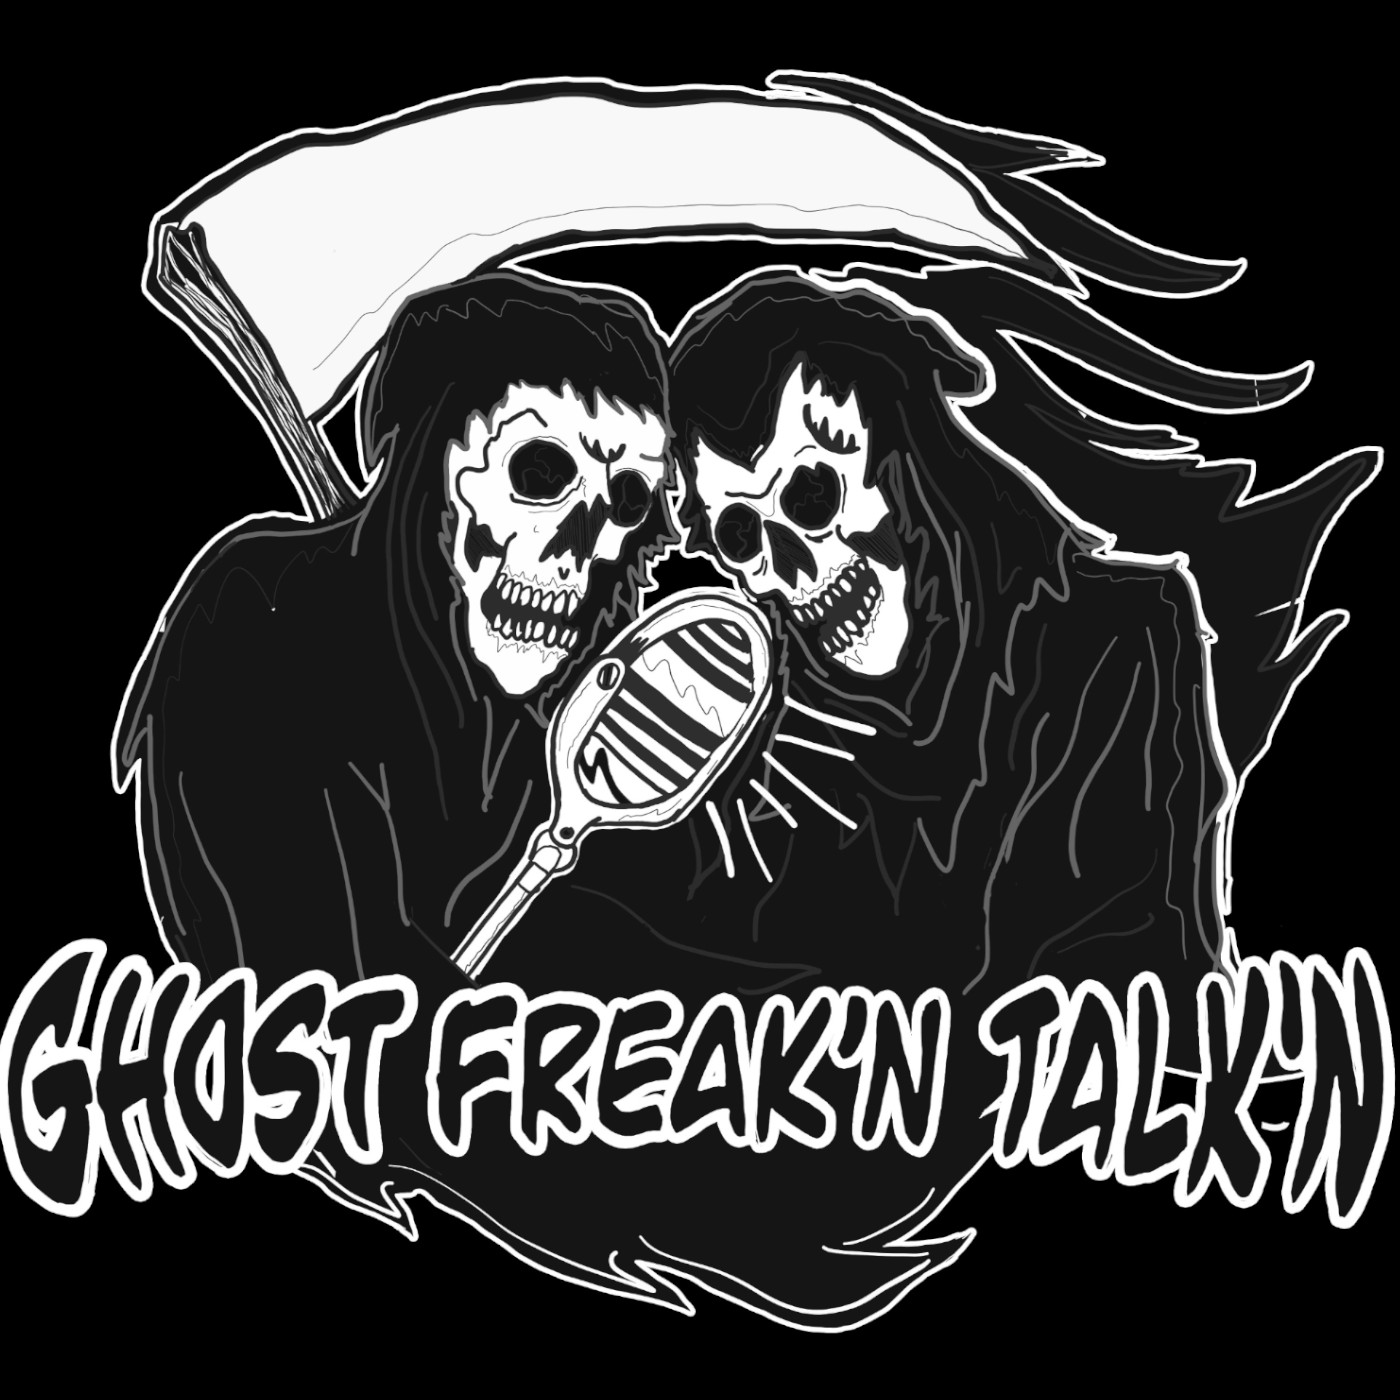 Ghost Freak'n Talk'n Podcast